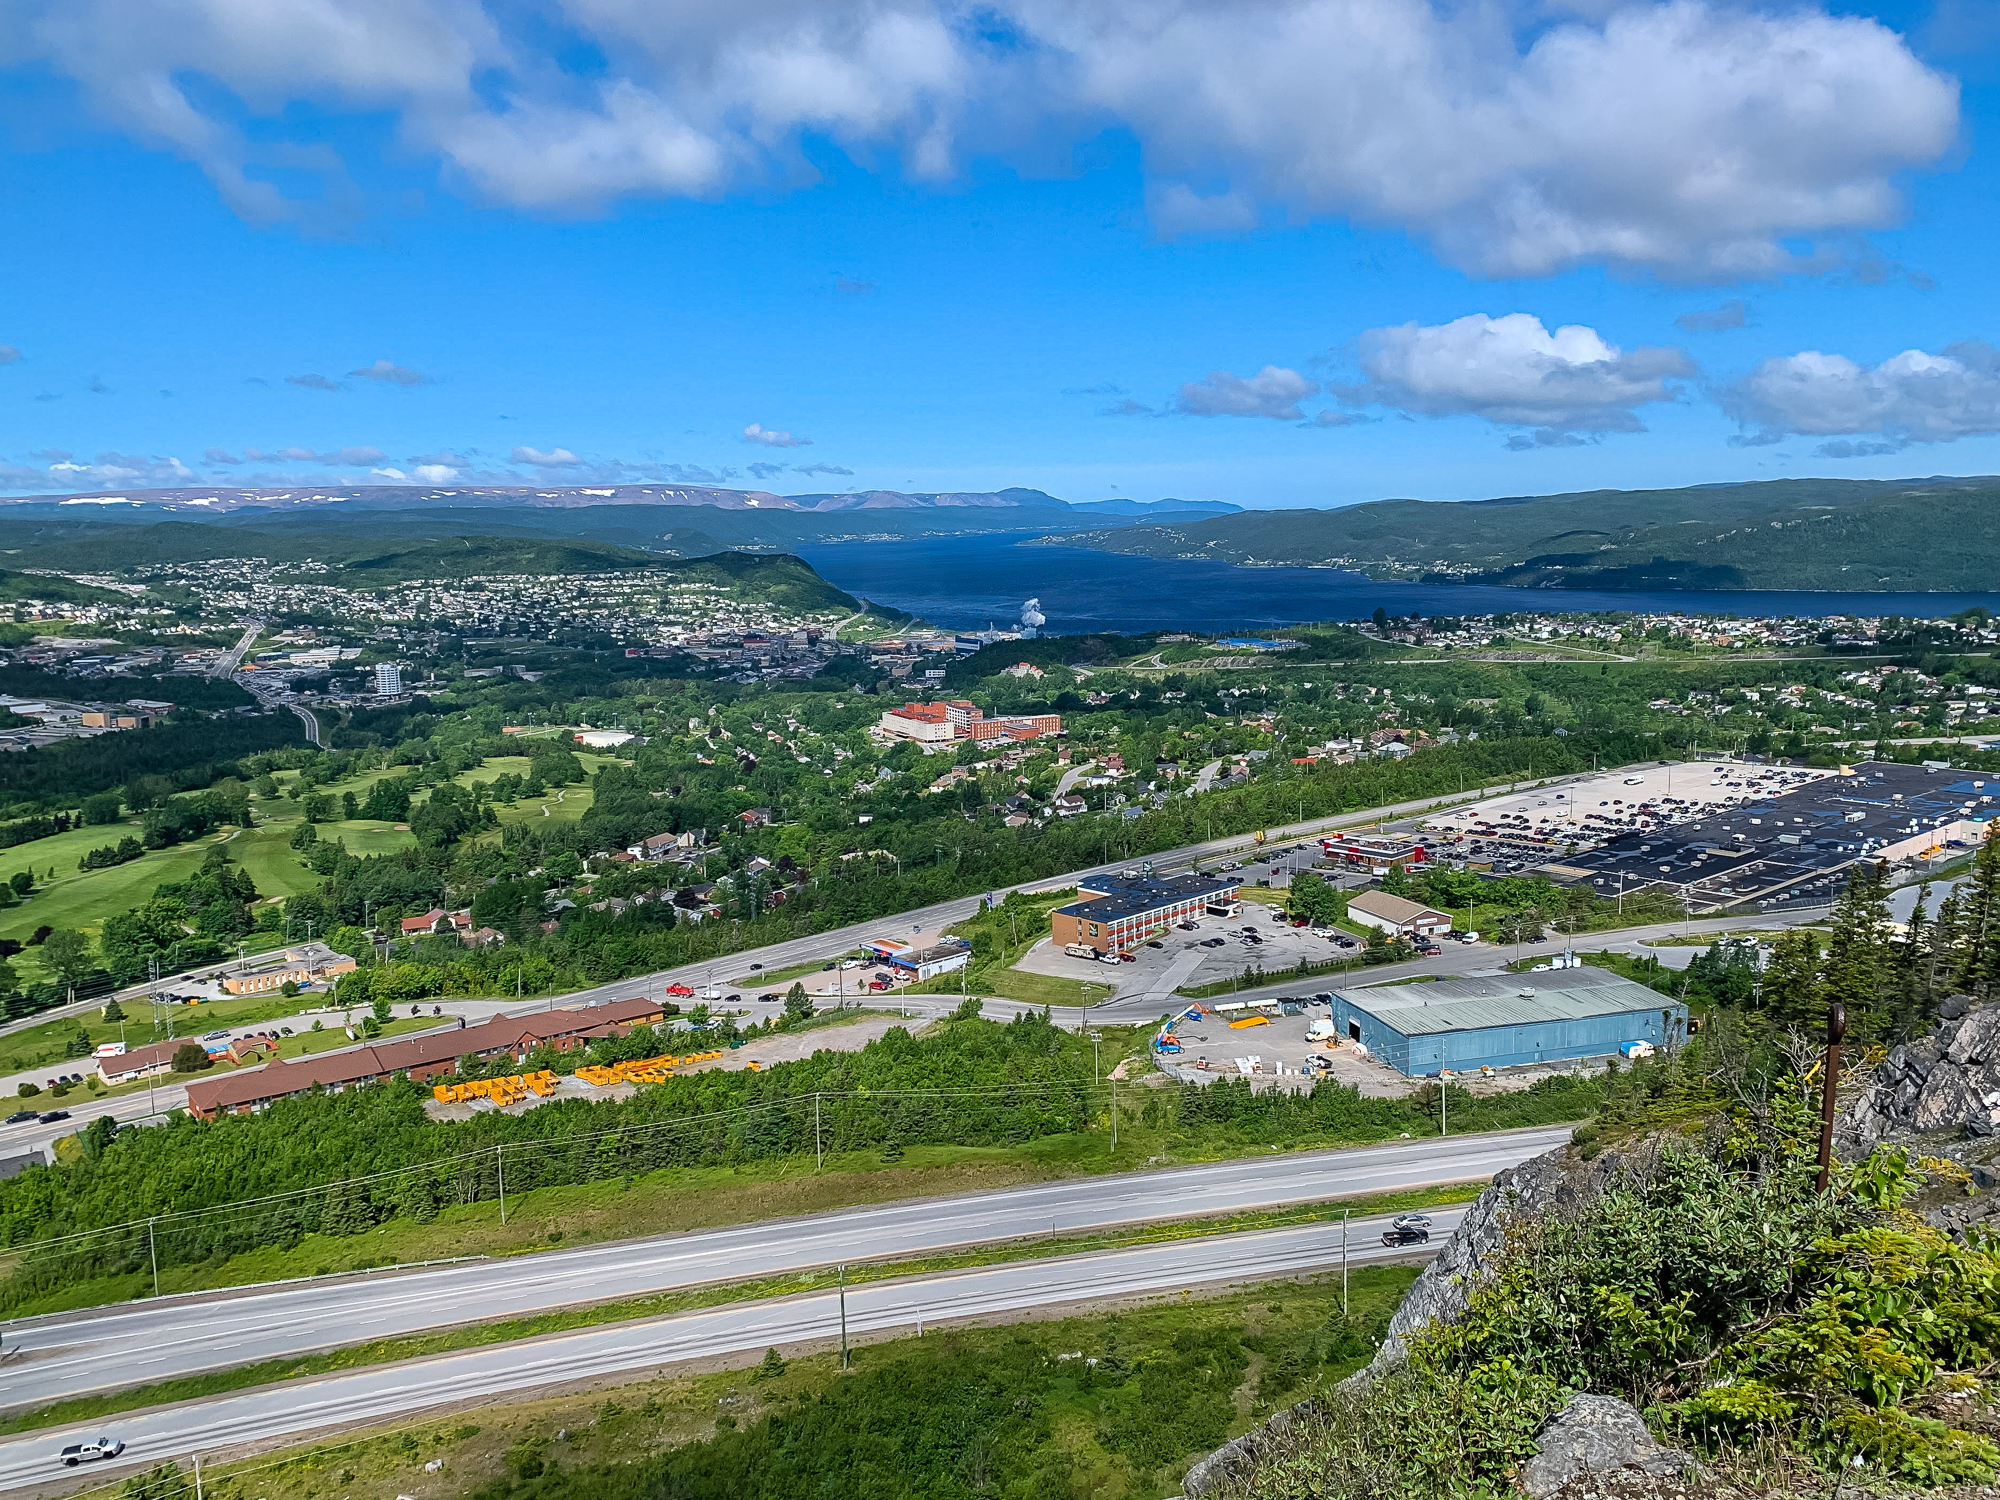 07-16-19 /  Excited to be working with the City of Corner Brook and The Great Trail to explore new trail routes on the beautiful west coast.